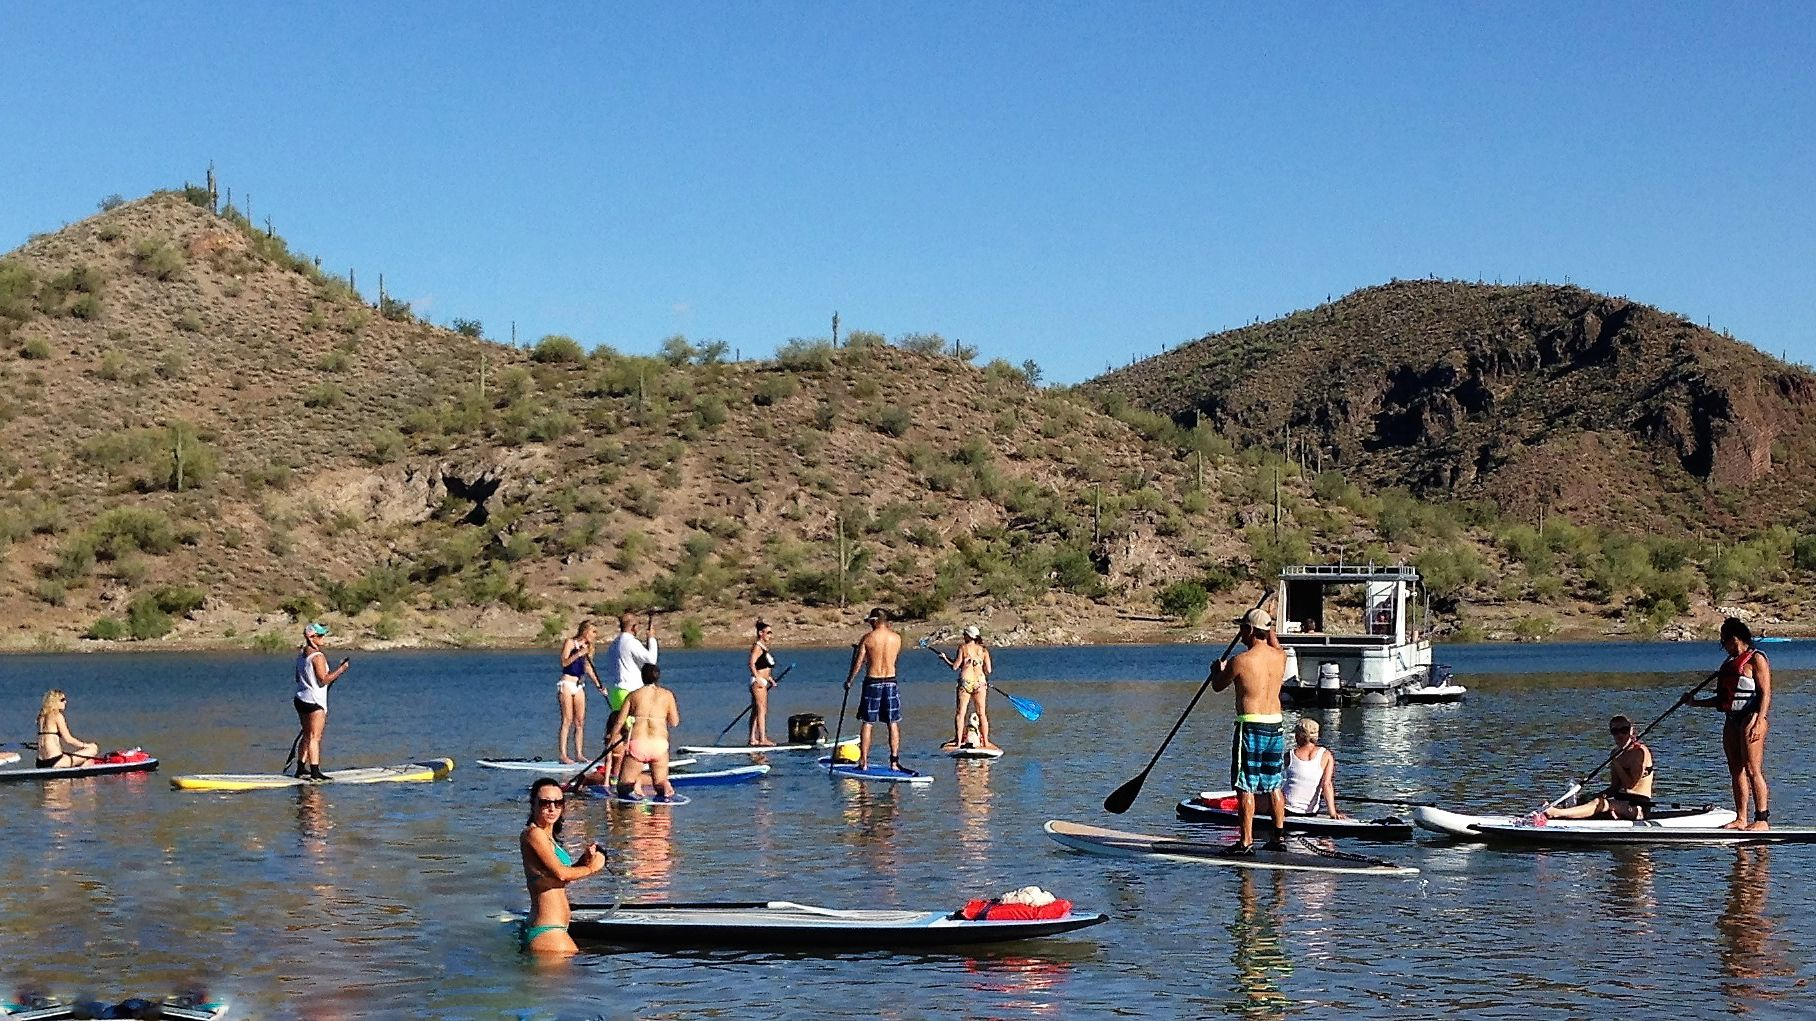 A group of paddle boarders on a lake